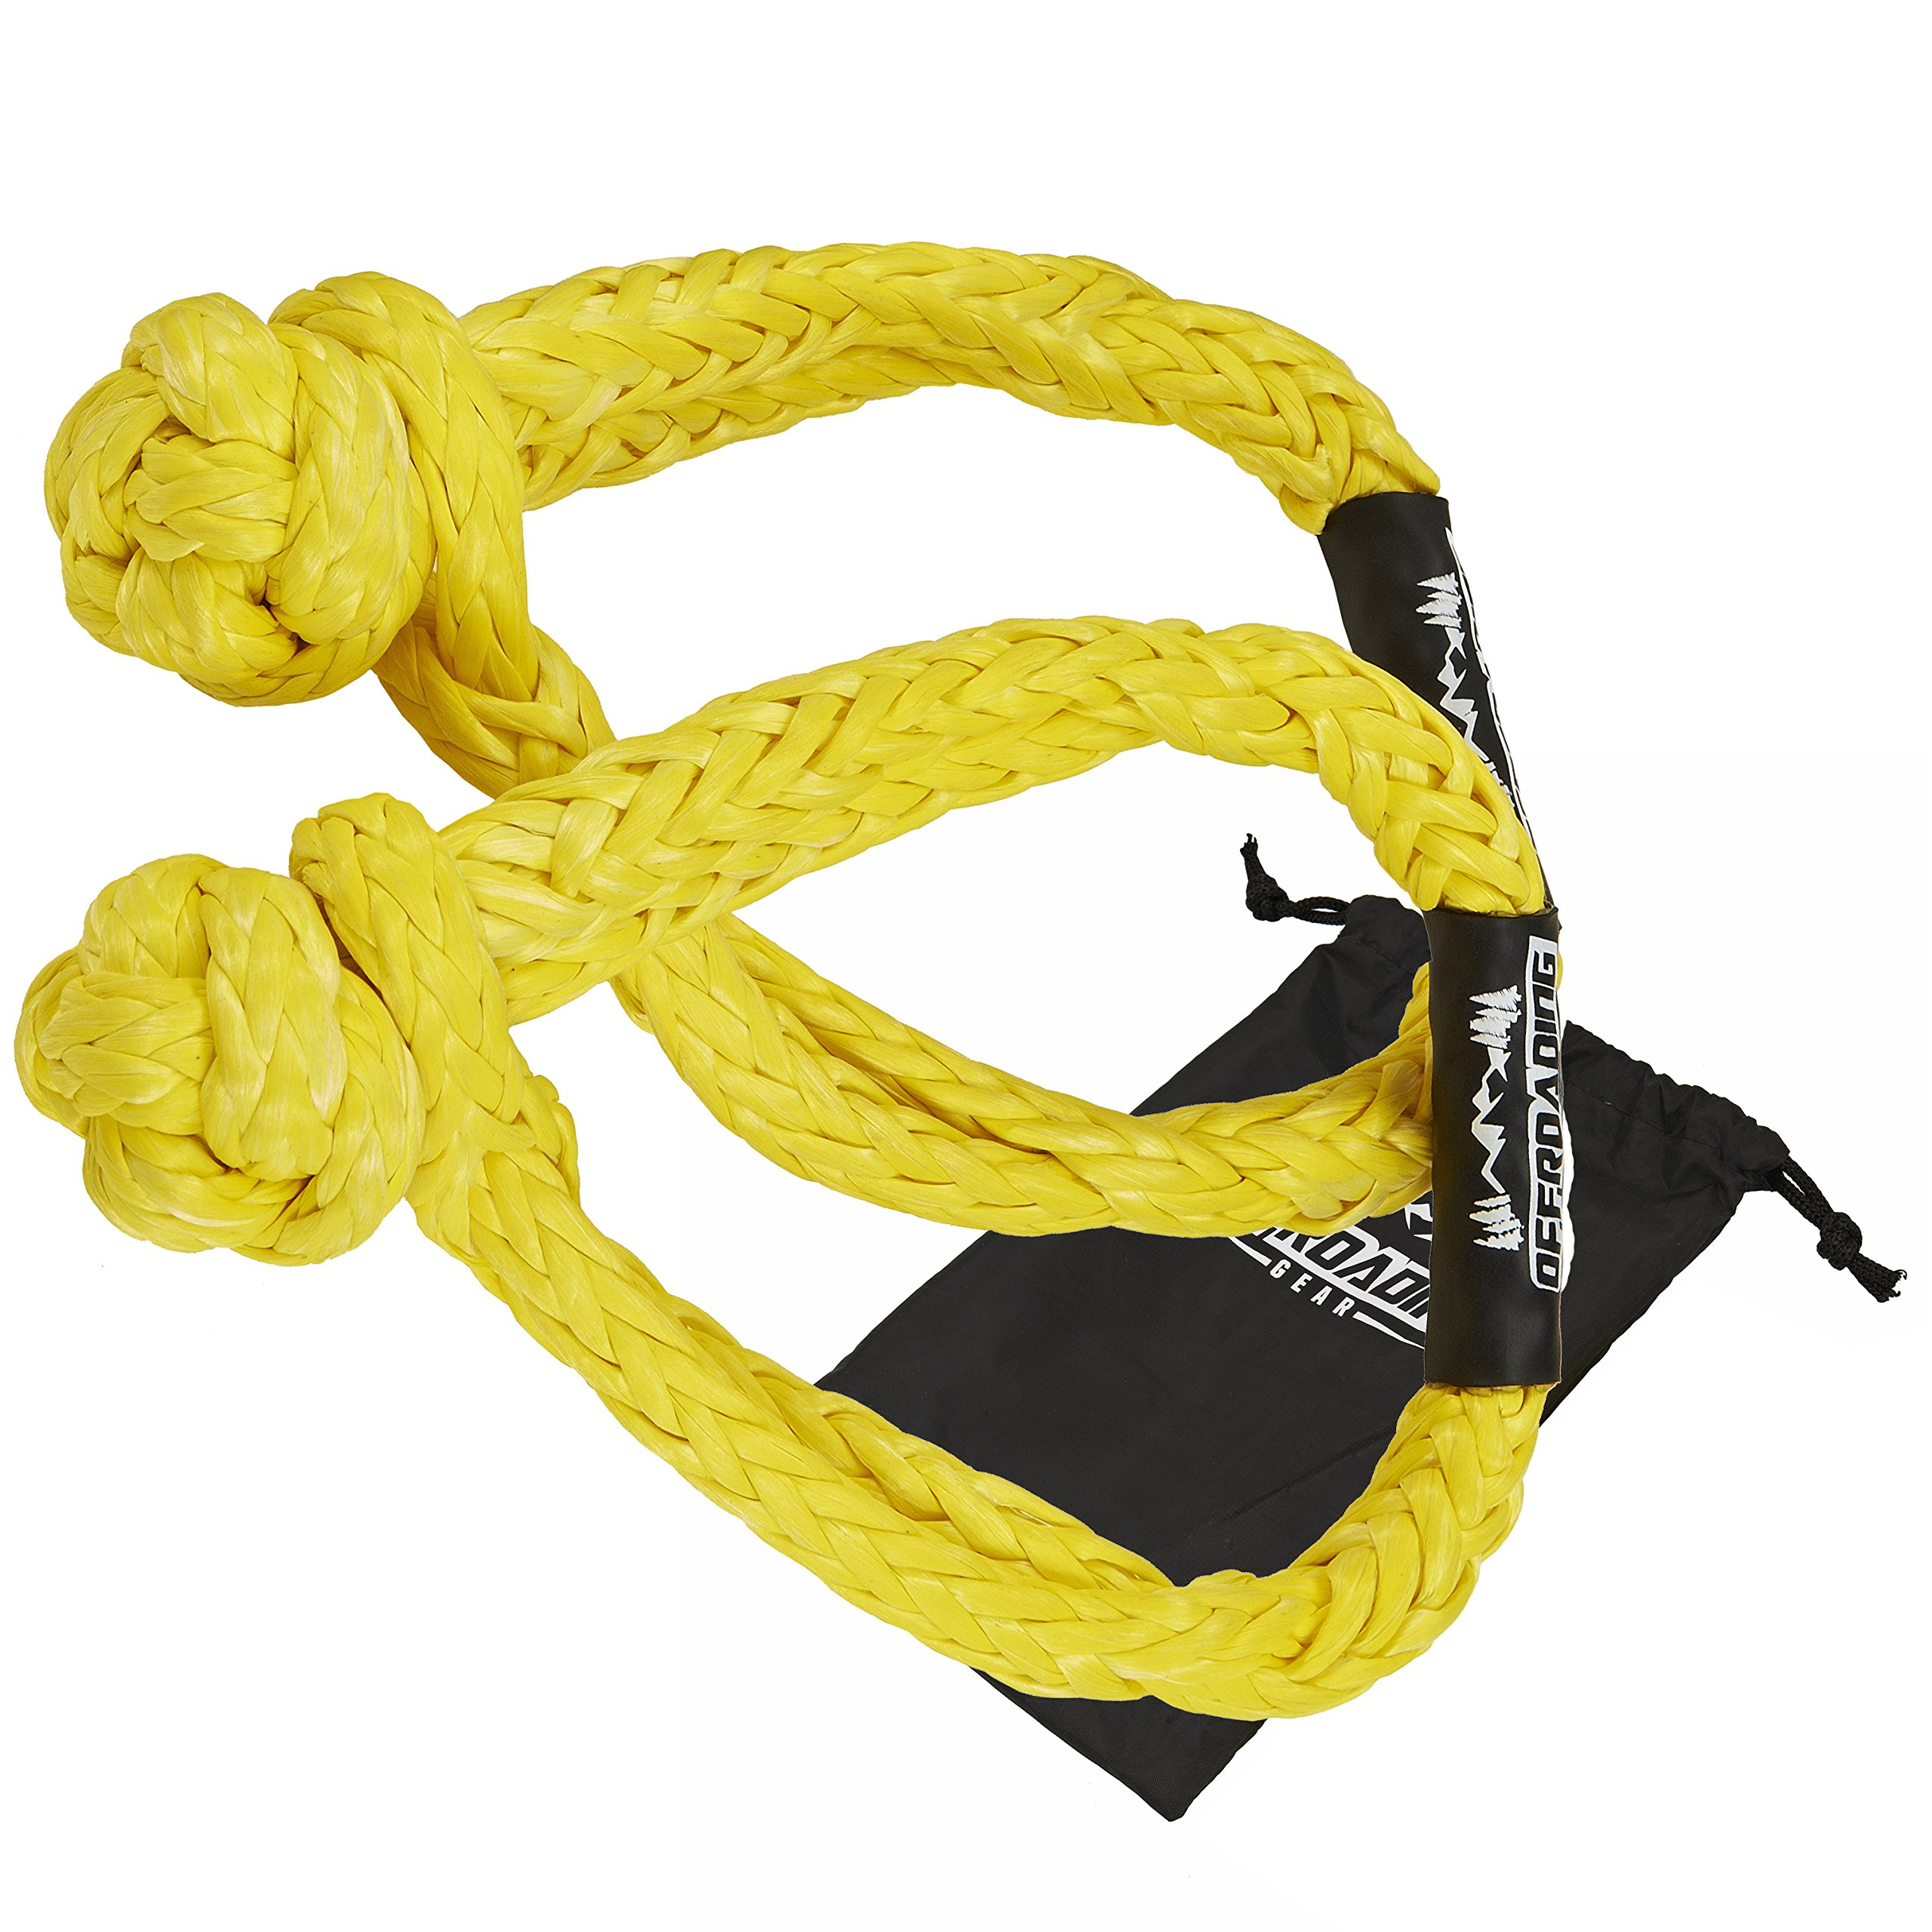 Offroading Gear Set of Two 1/2'' Synthetic Soft Rope Shackles w/Free Storage Bag, 38,000lbs+ by Offroading Gear